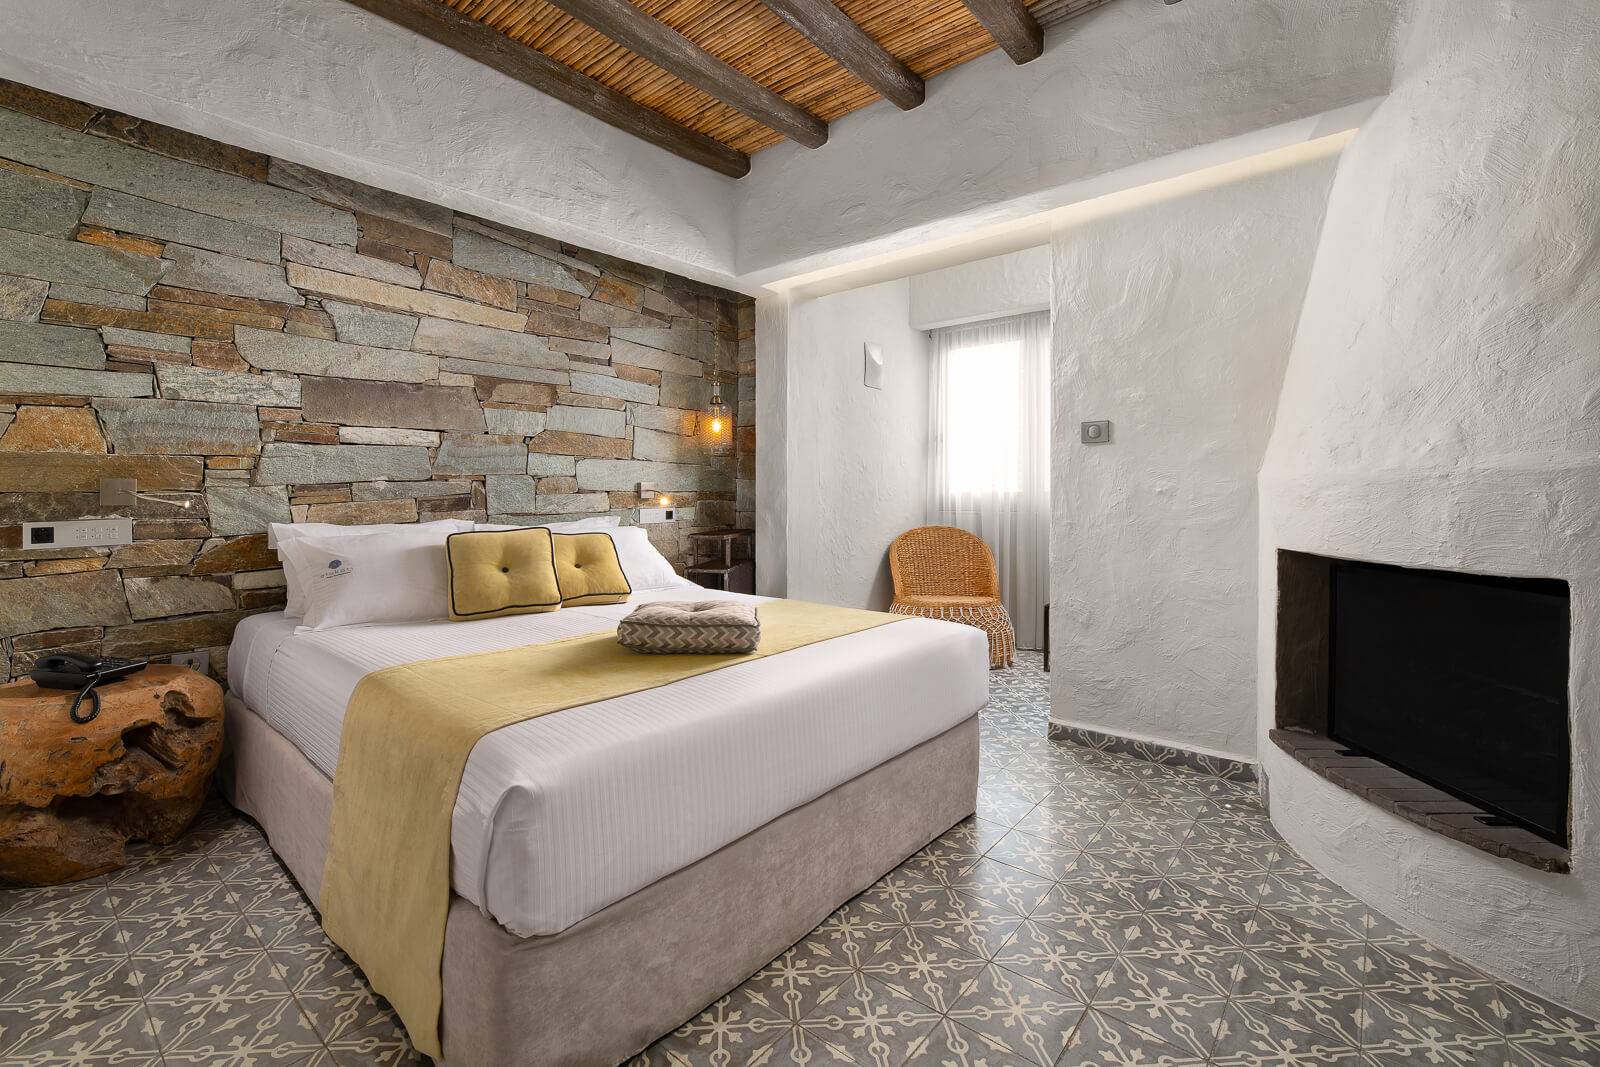 Helios Hotel Suite with Fireplace - Elakati Luxury Boutique Hotel in Rhodes